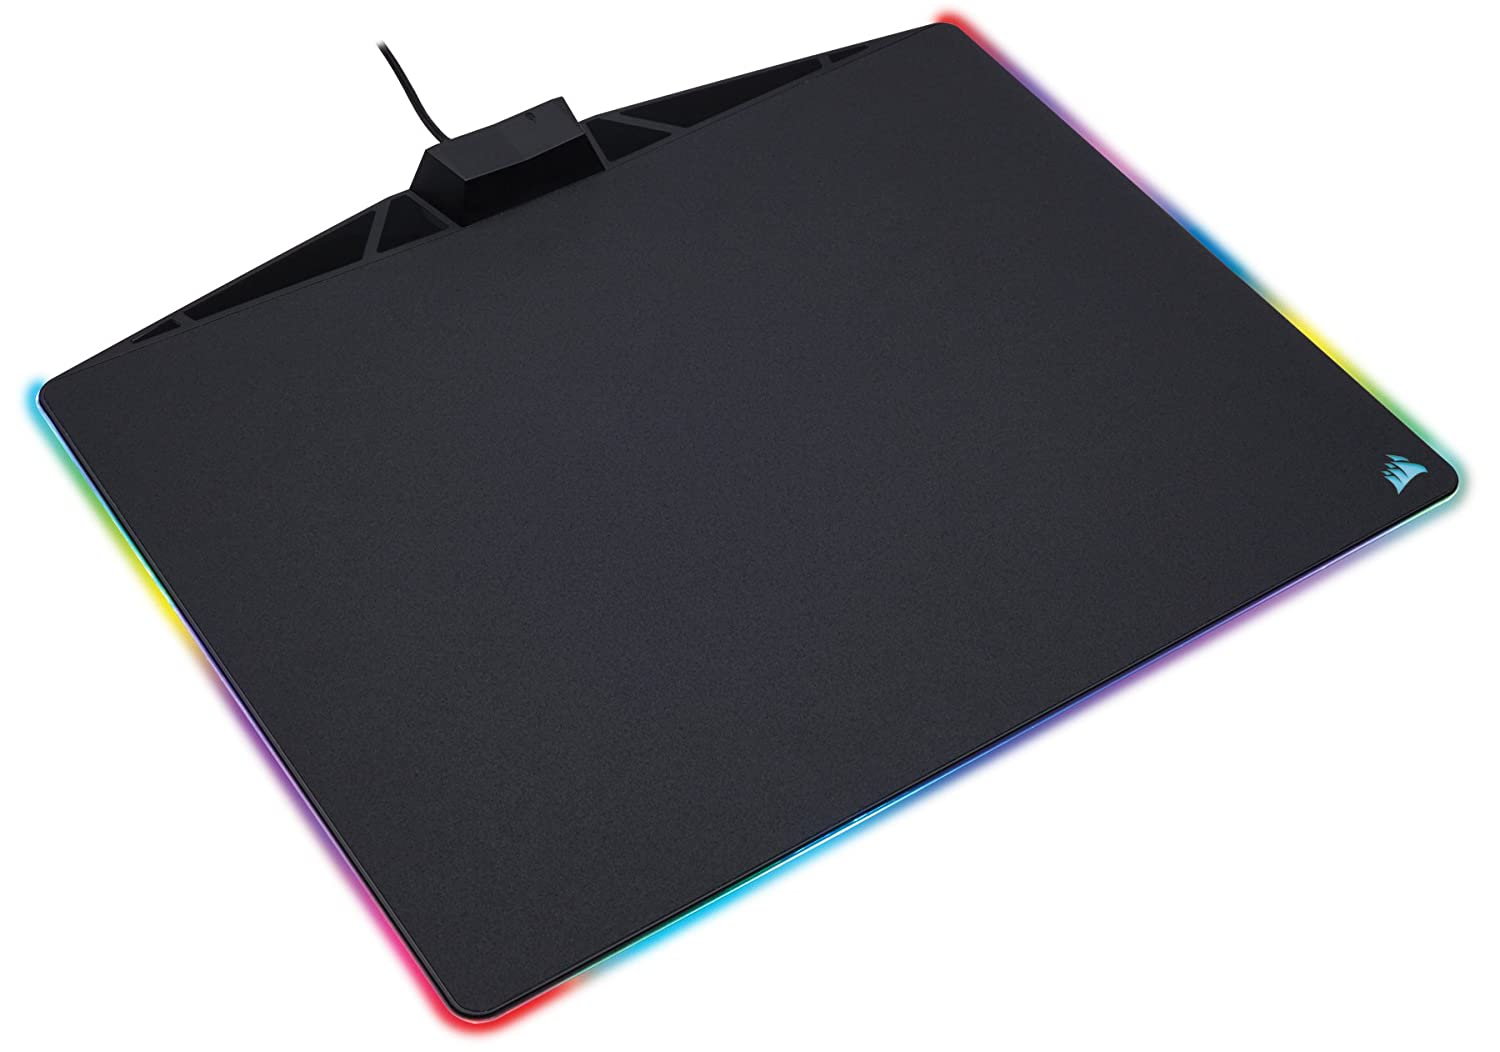 Gaming Mauspad Test Die 12 Besten Mauspads 2018 Update Mousepad Razer Speed 300x250 Mm Das